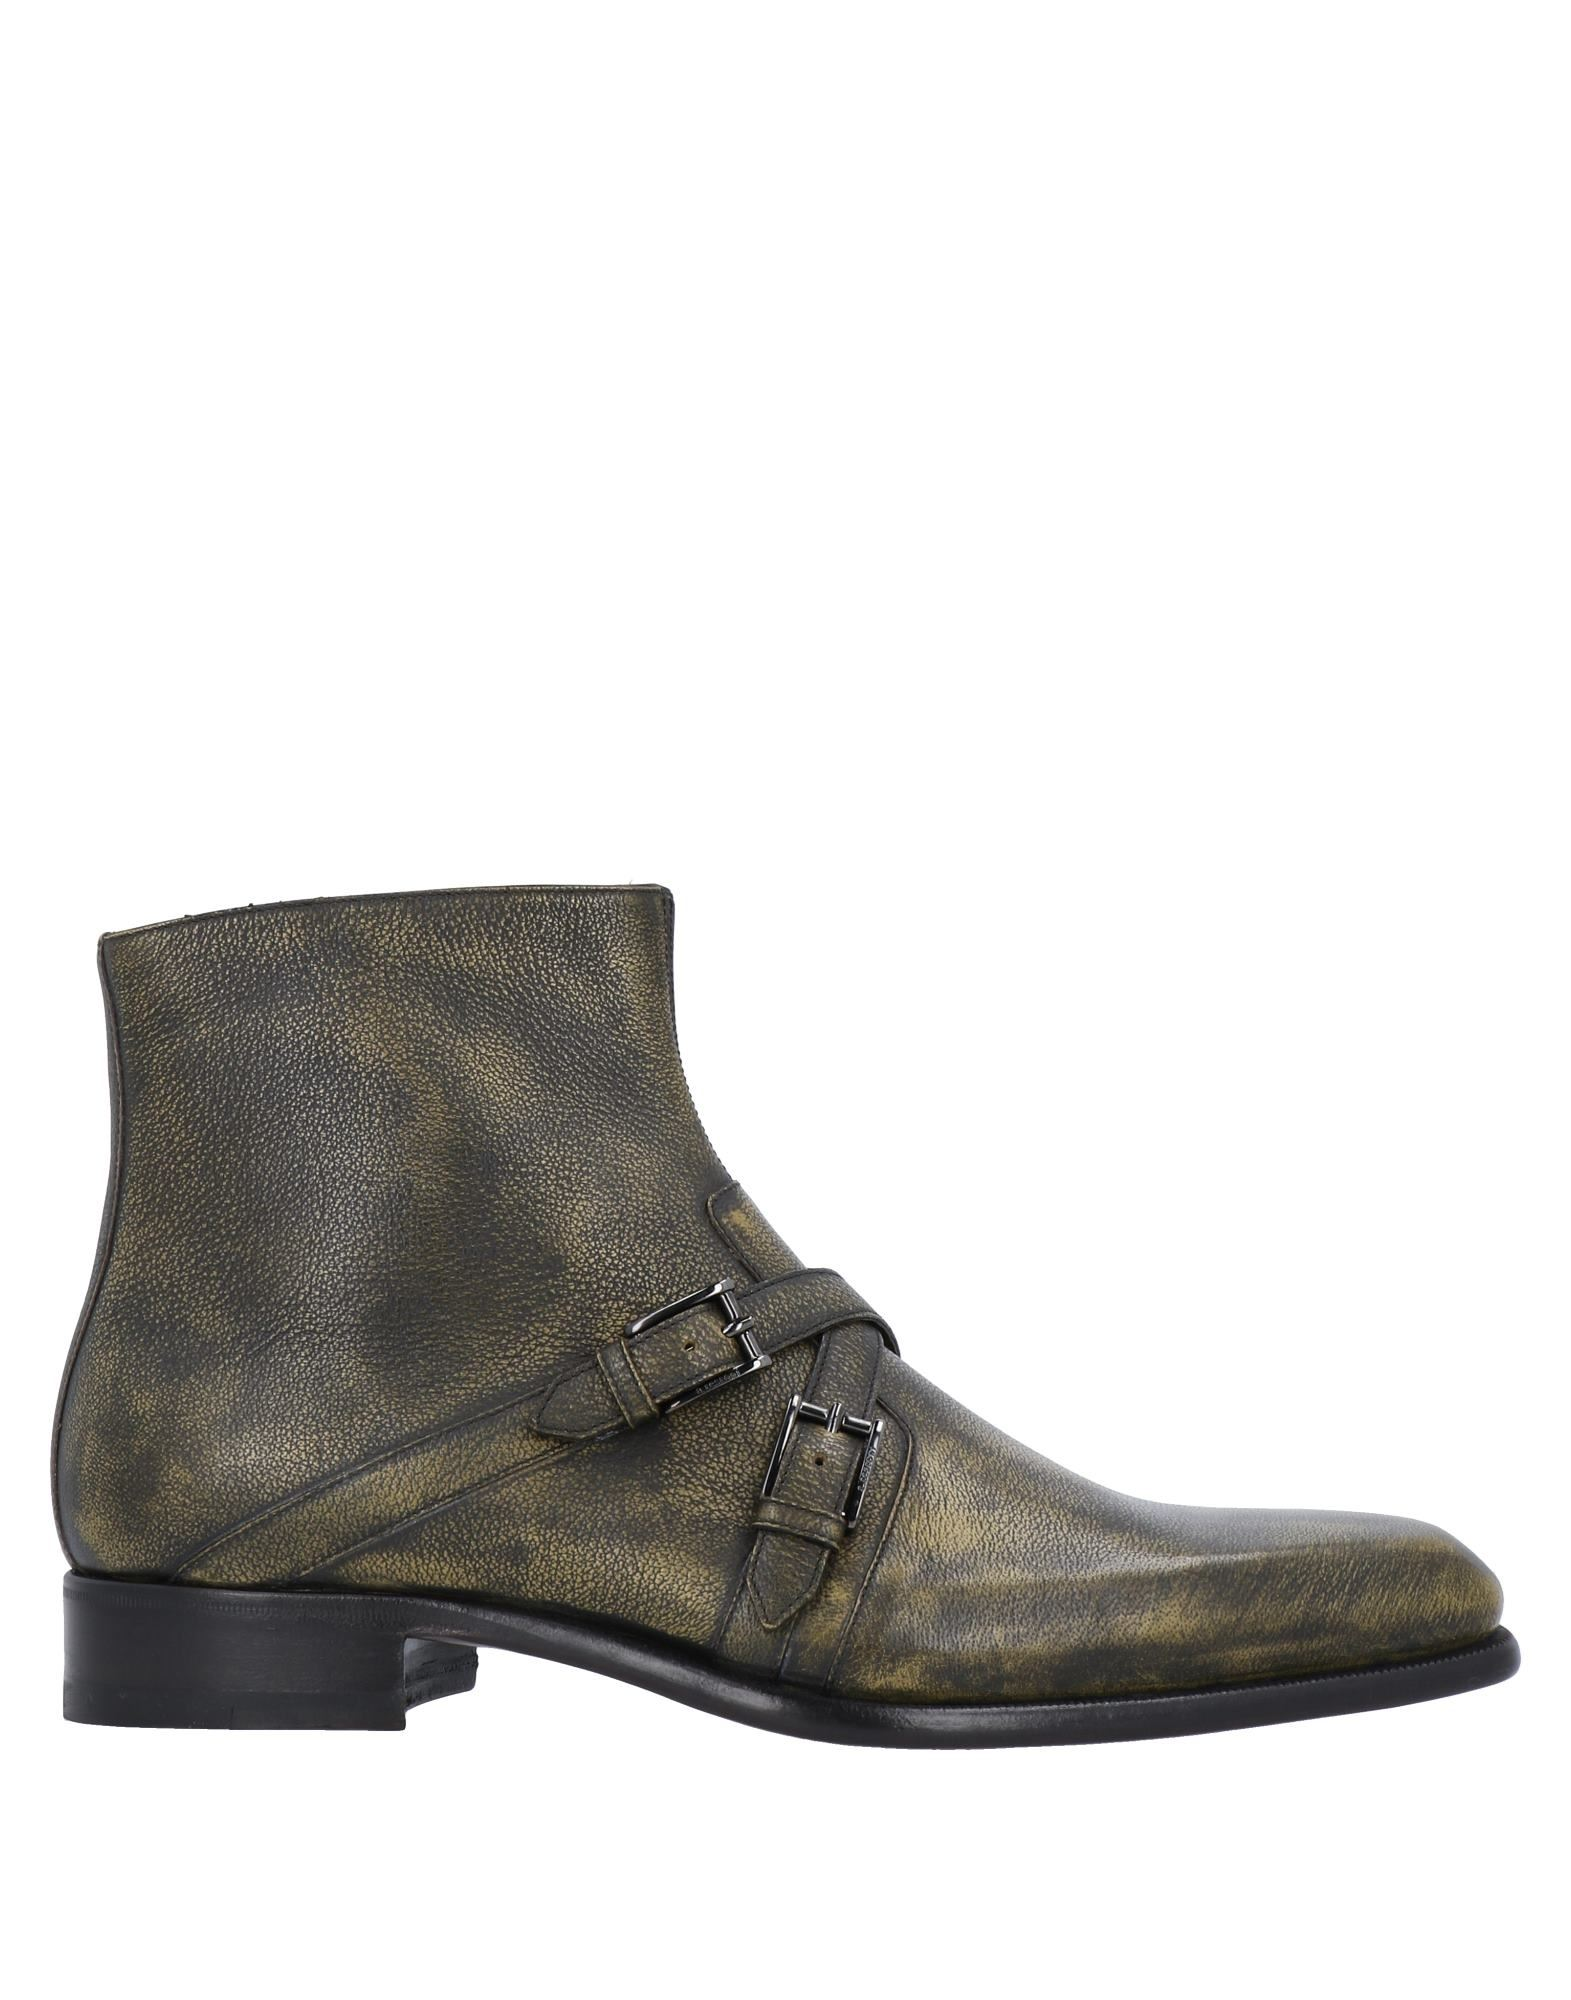 A.testoni Ankle Boots In Military Green